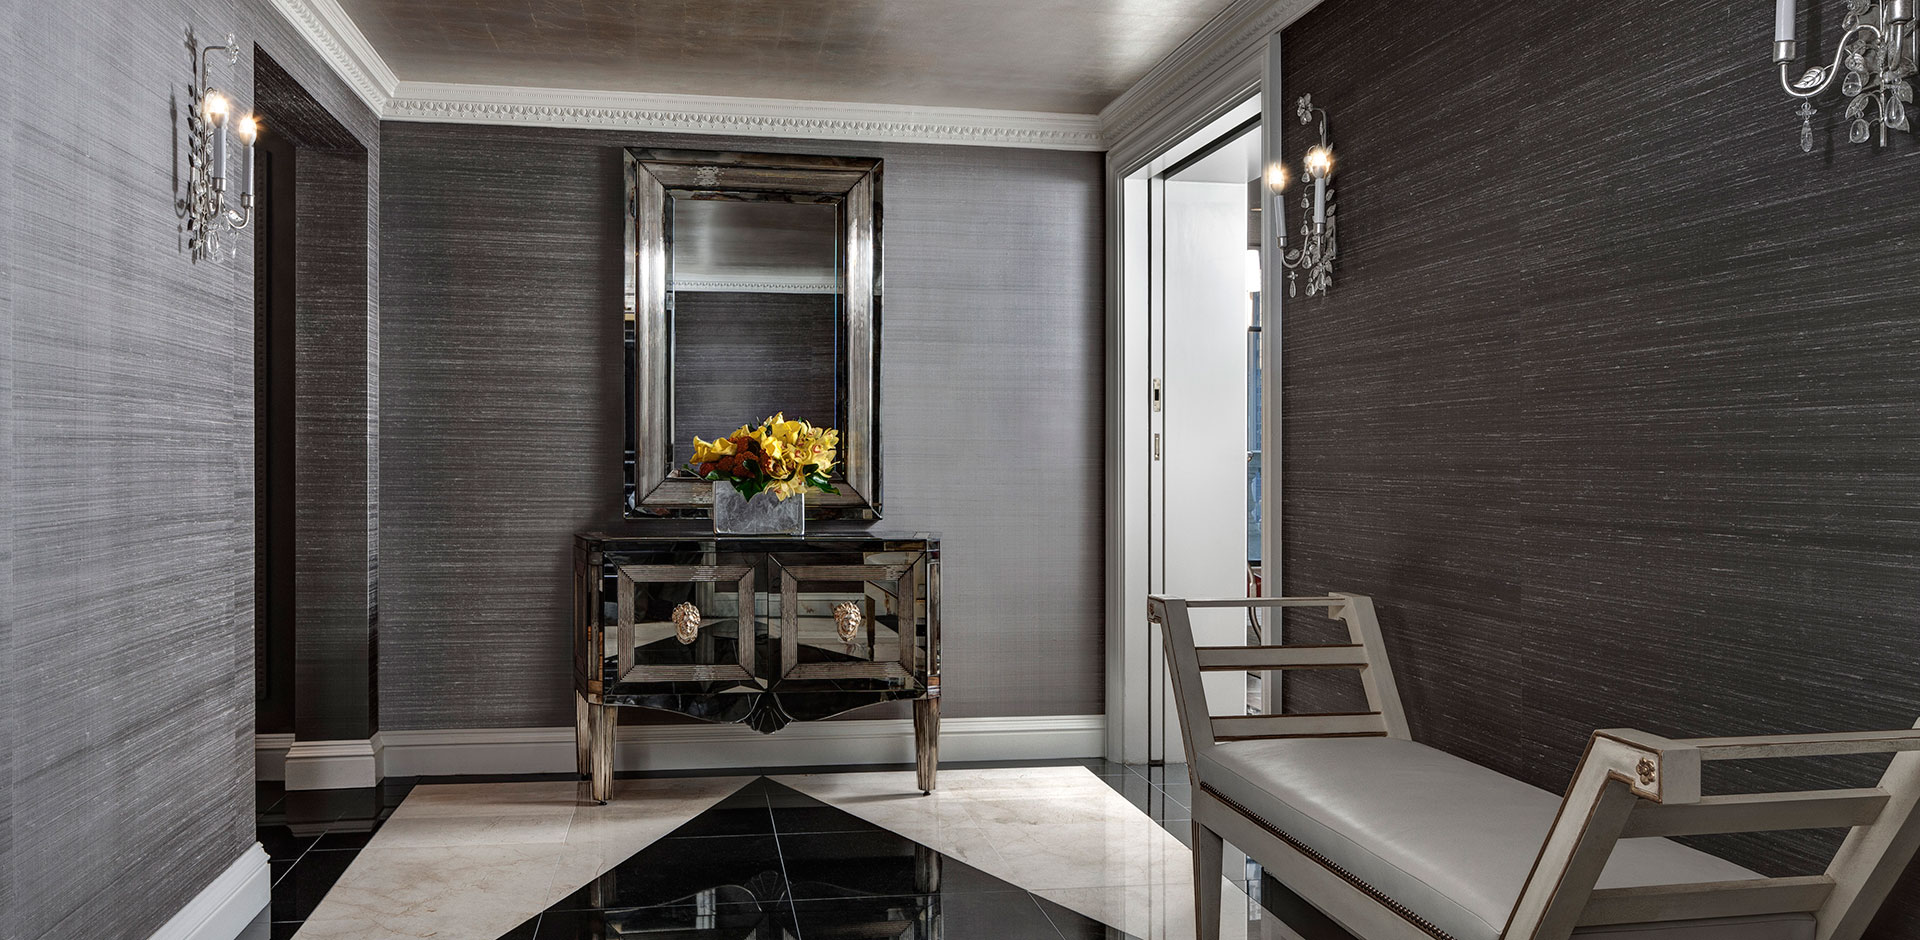 St Regis, New York - Presidential Suite 1 Entrance